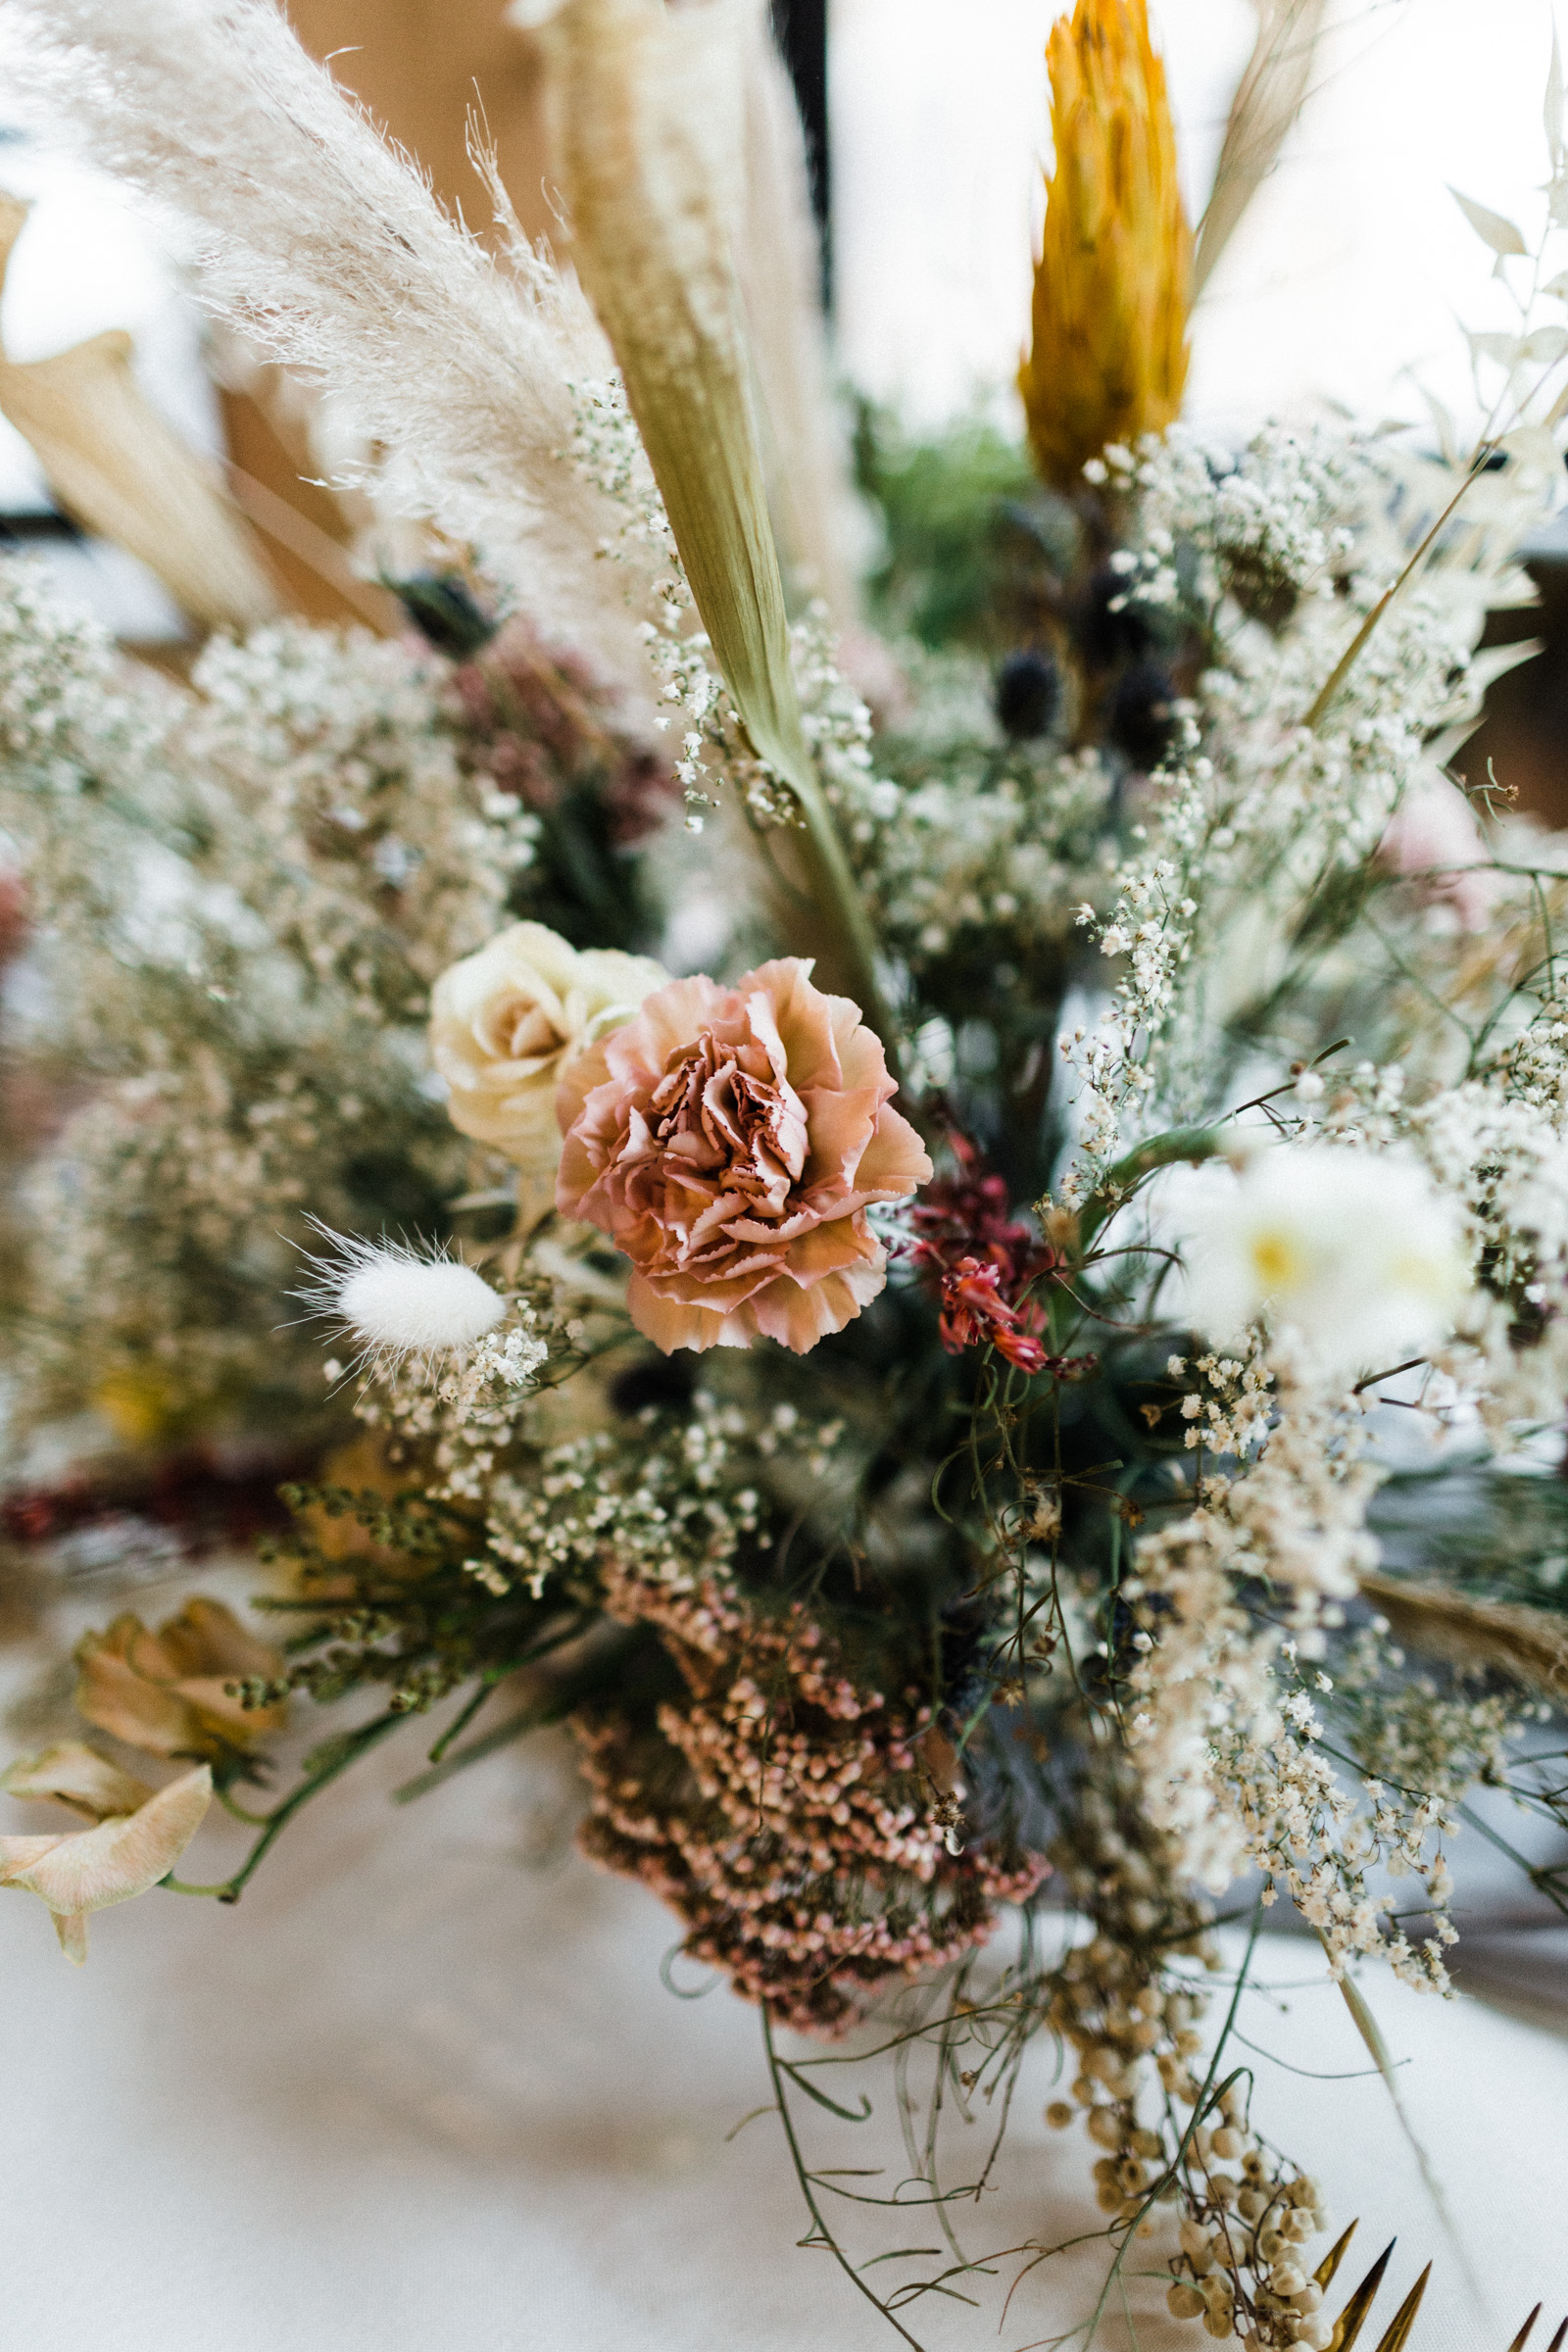 Wedding florals on tablescape at The century hall in fort worth